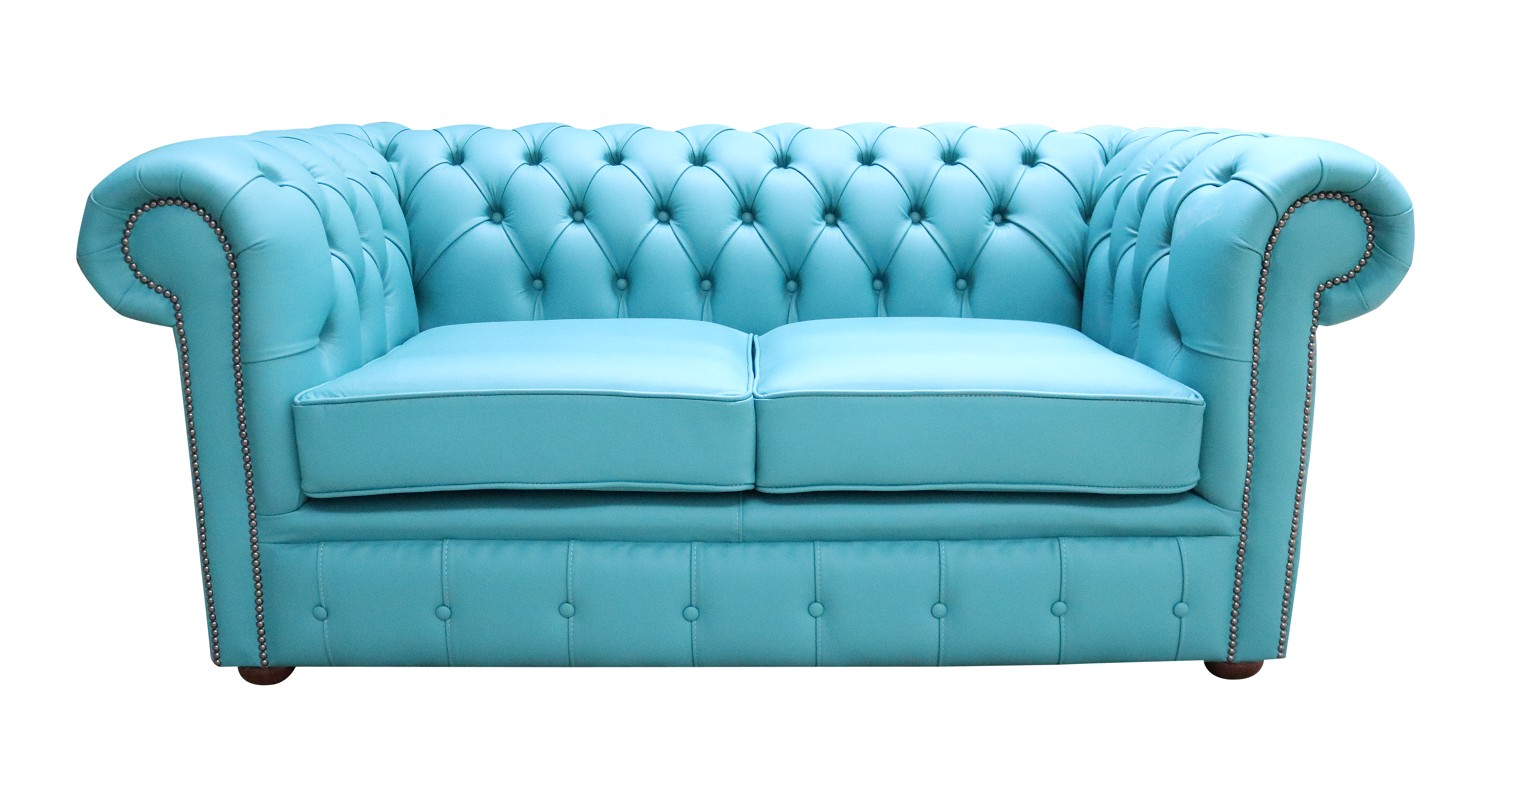 Chesterfield 2 Seater Shelly Dark Teal Blue Leather Sofa Offer